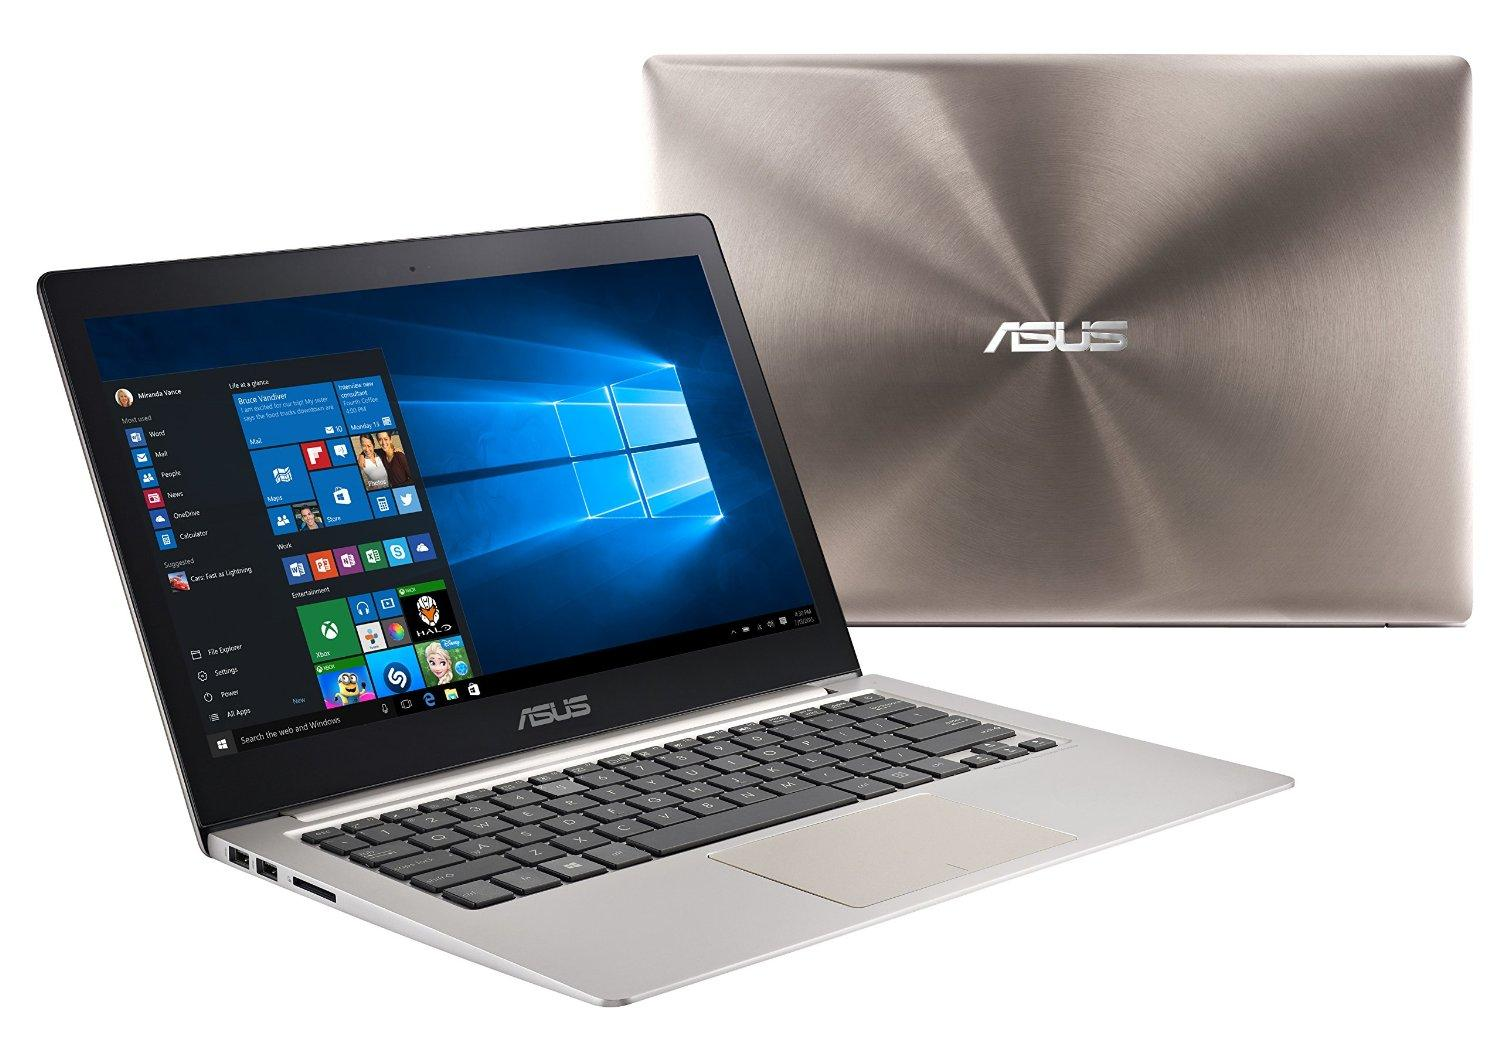 ASUS Zenbook UX303UA 13.3 Inch, Intel Core i5, 8GB, 256GB SSD Laptop